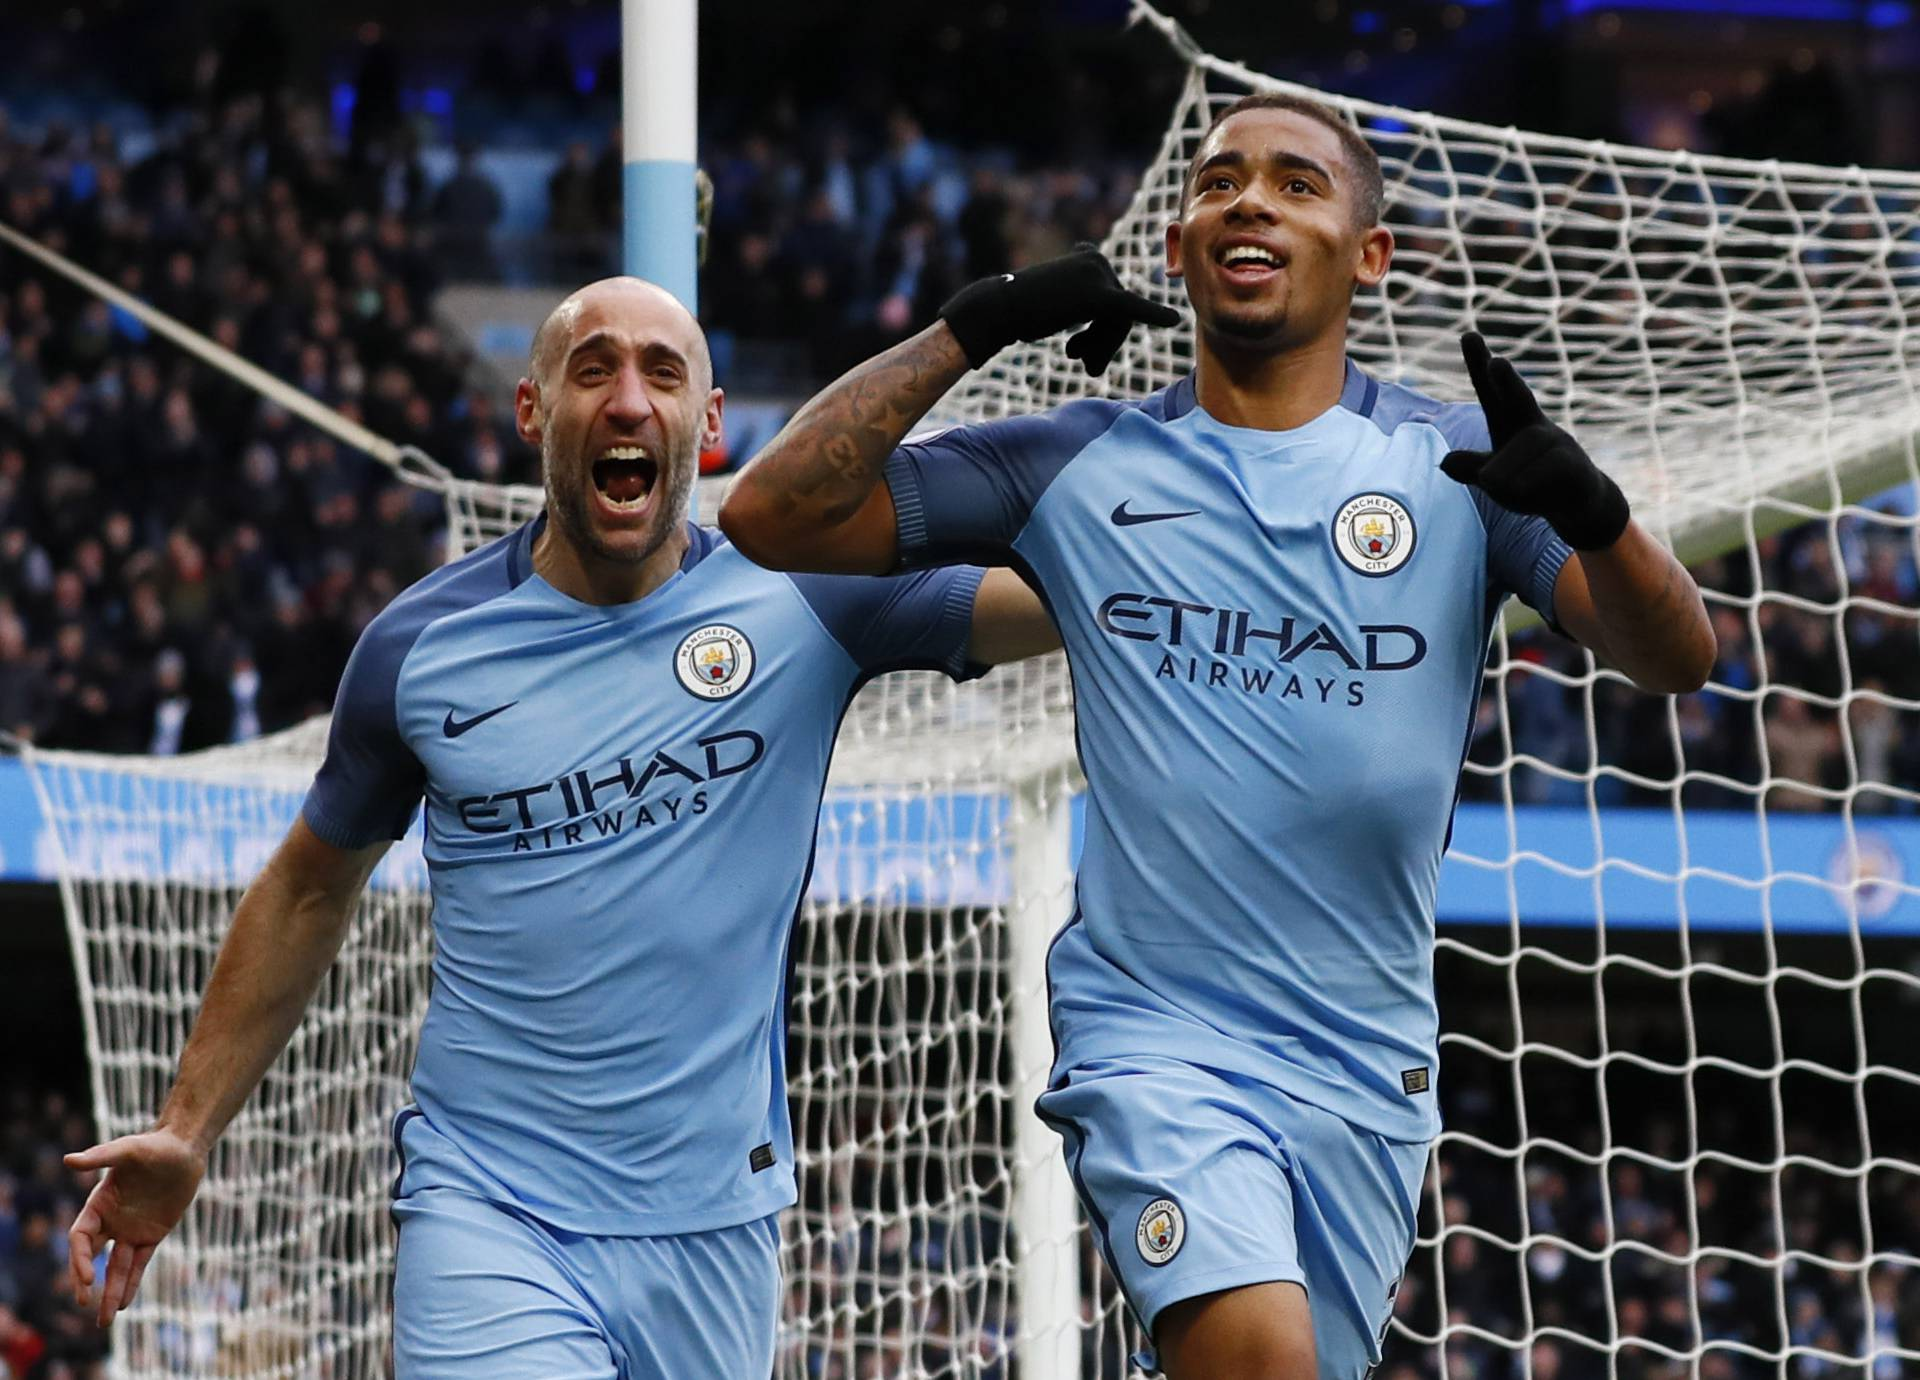 Manchester City's Gabriel Jesus celebrates scoring their second goal with Pablo Zabaleta